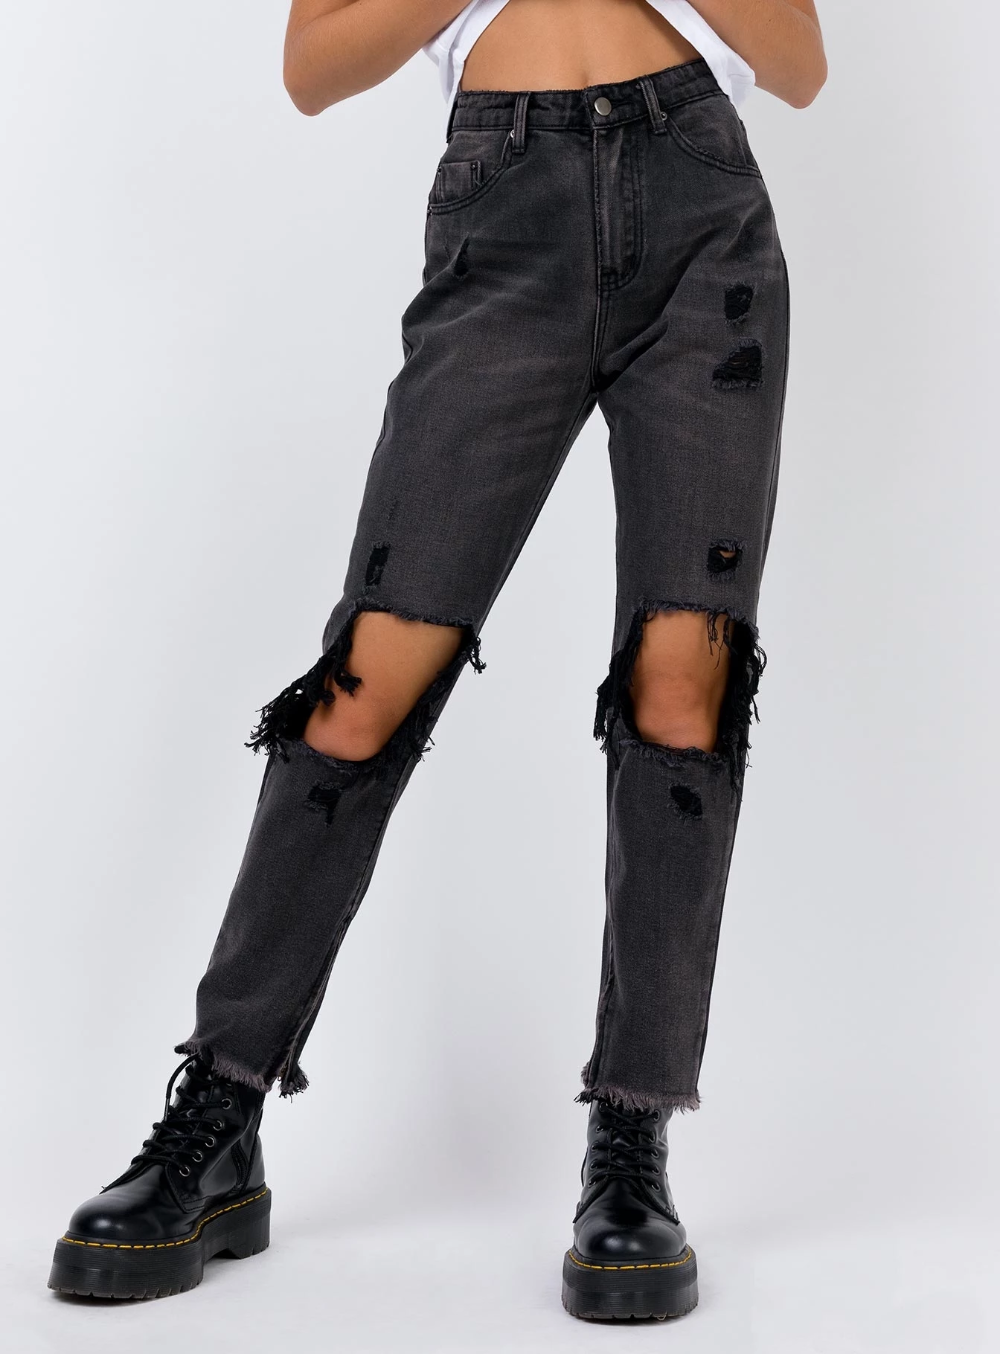 stupro spagnolo Governare  Erissa Knee Rip Jeans Washed Black Denim | Ripped jeans outfit, Ripped knee  jeans, Black ripped jeans outfit